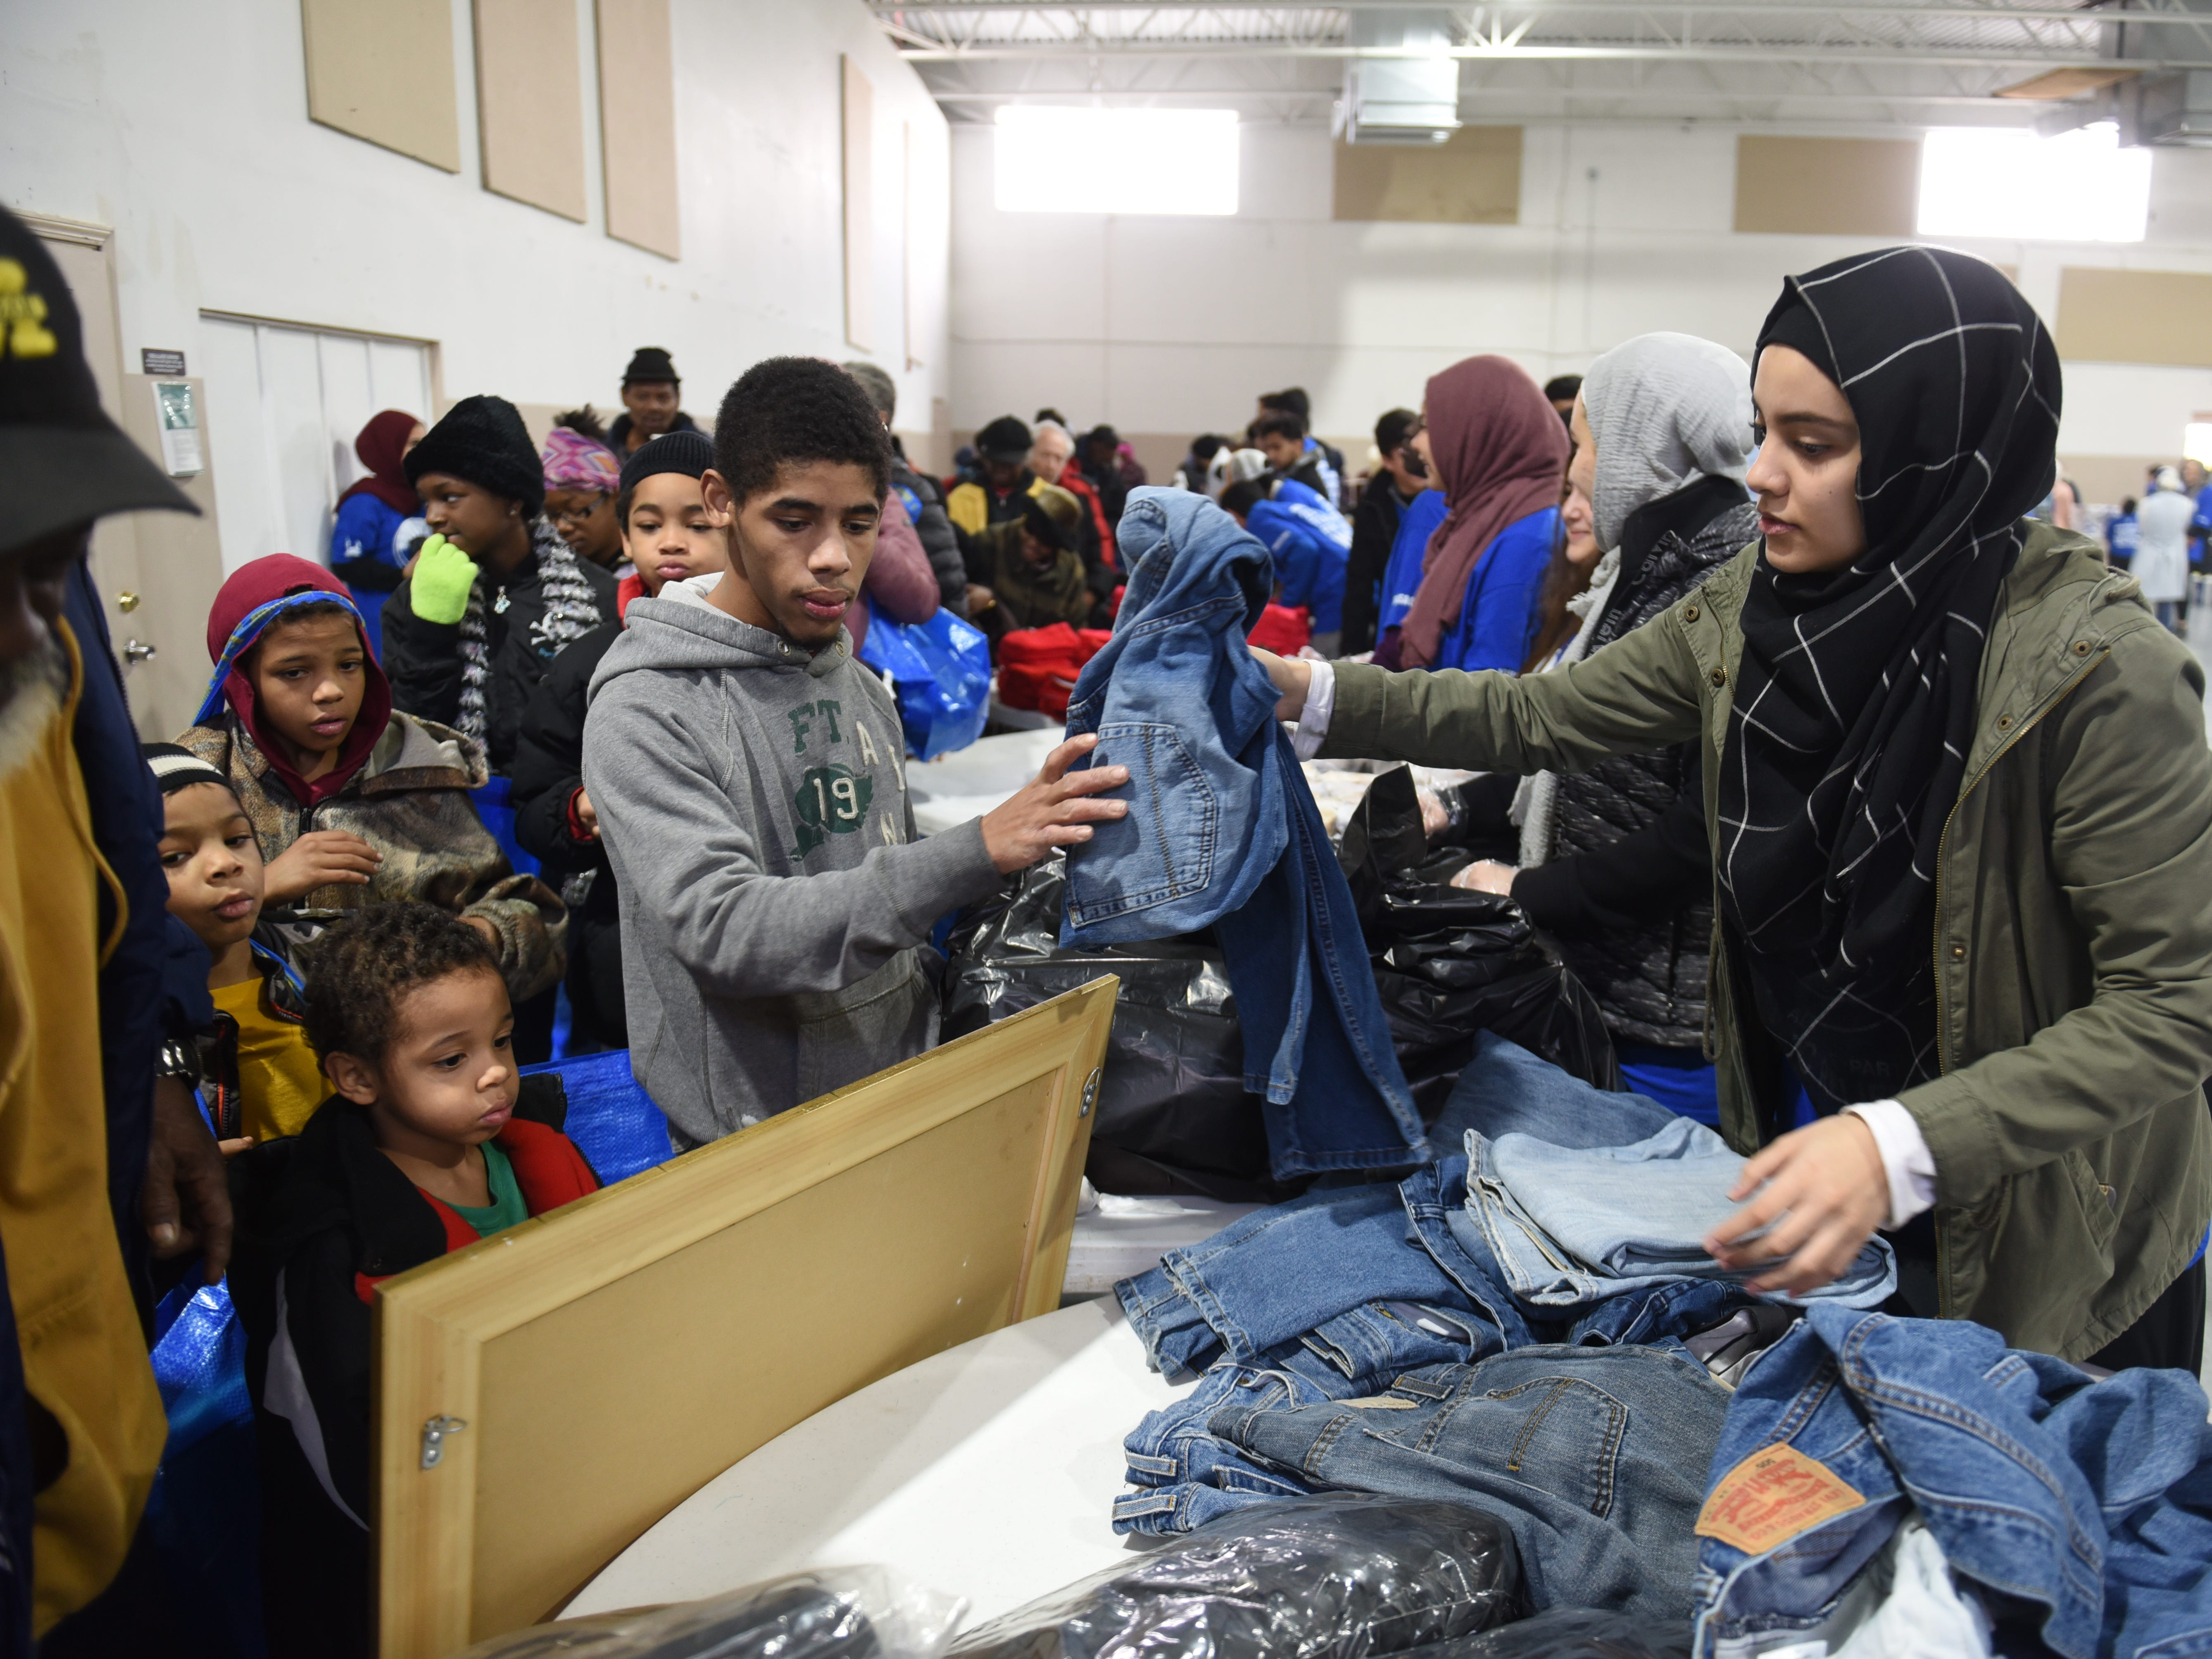 Volunteer Halla Almasmari (right) hands a pair of jeans to a client at the Muslim Center Mosque and Community Center in Detroit.